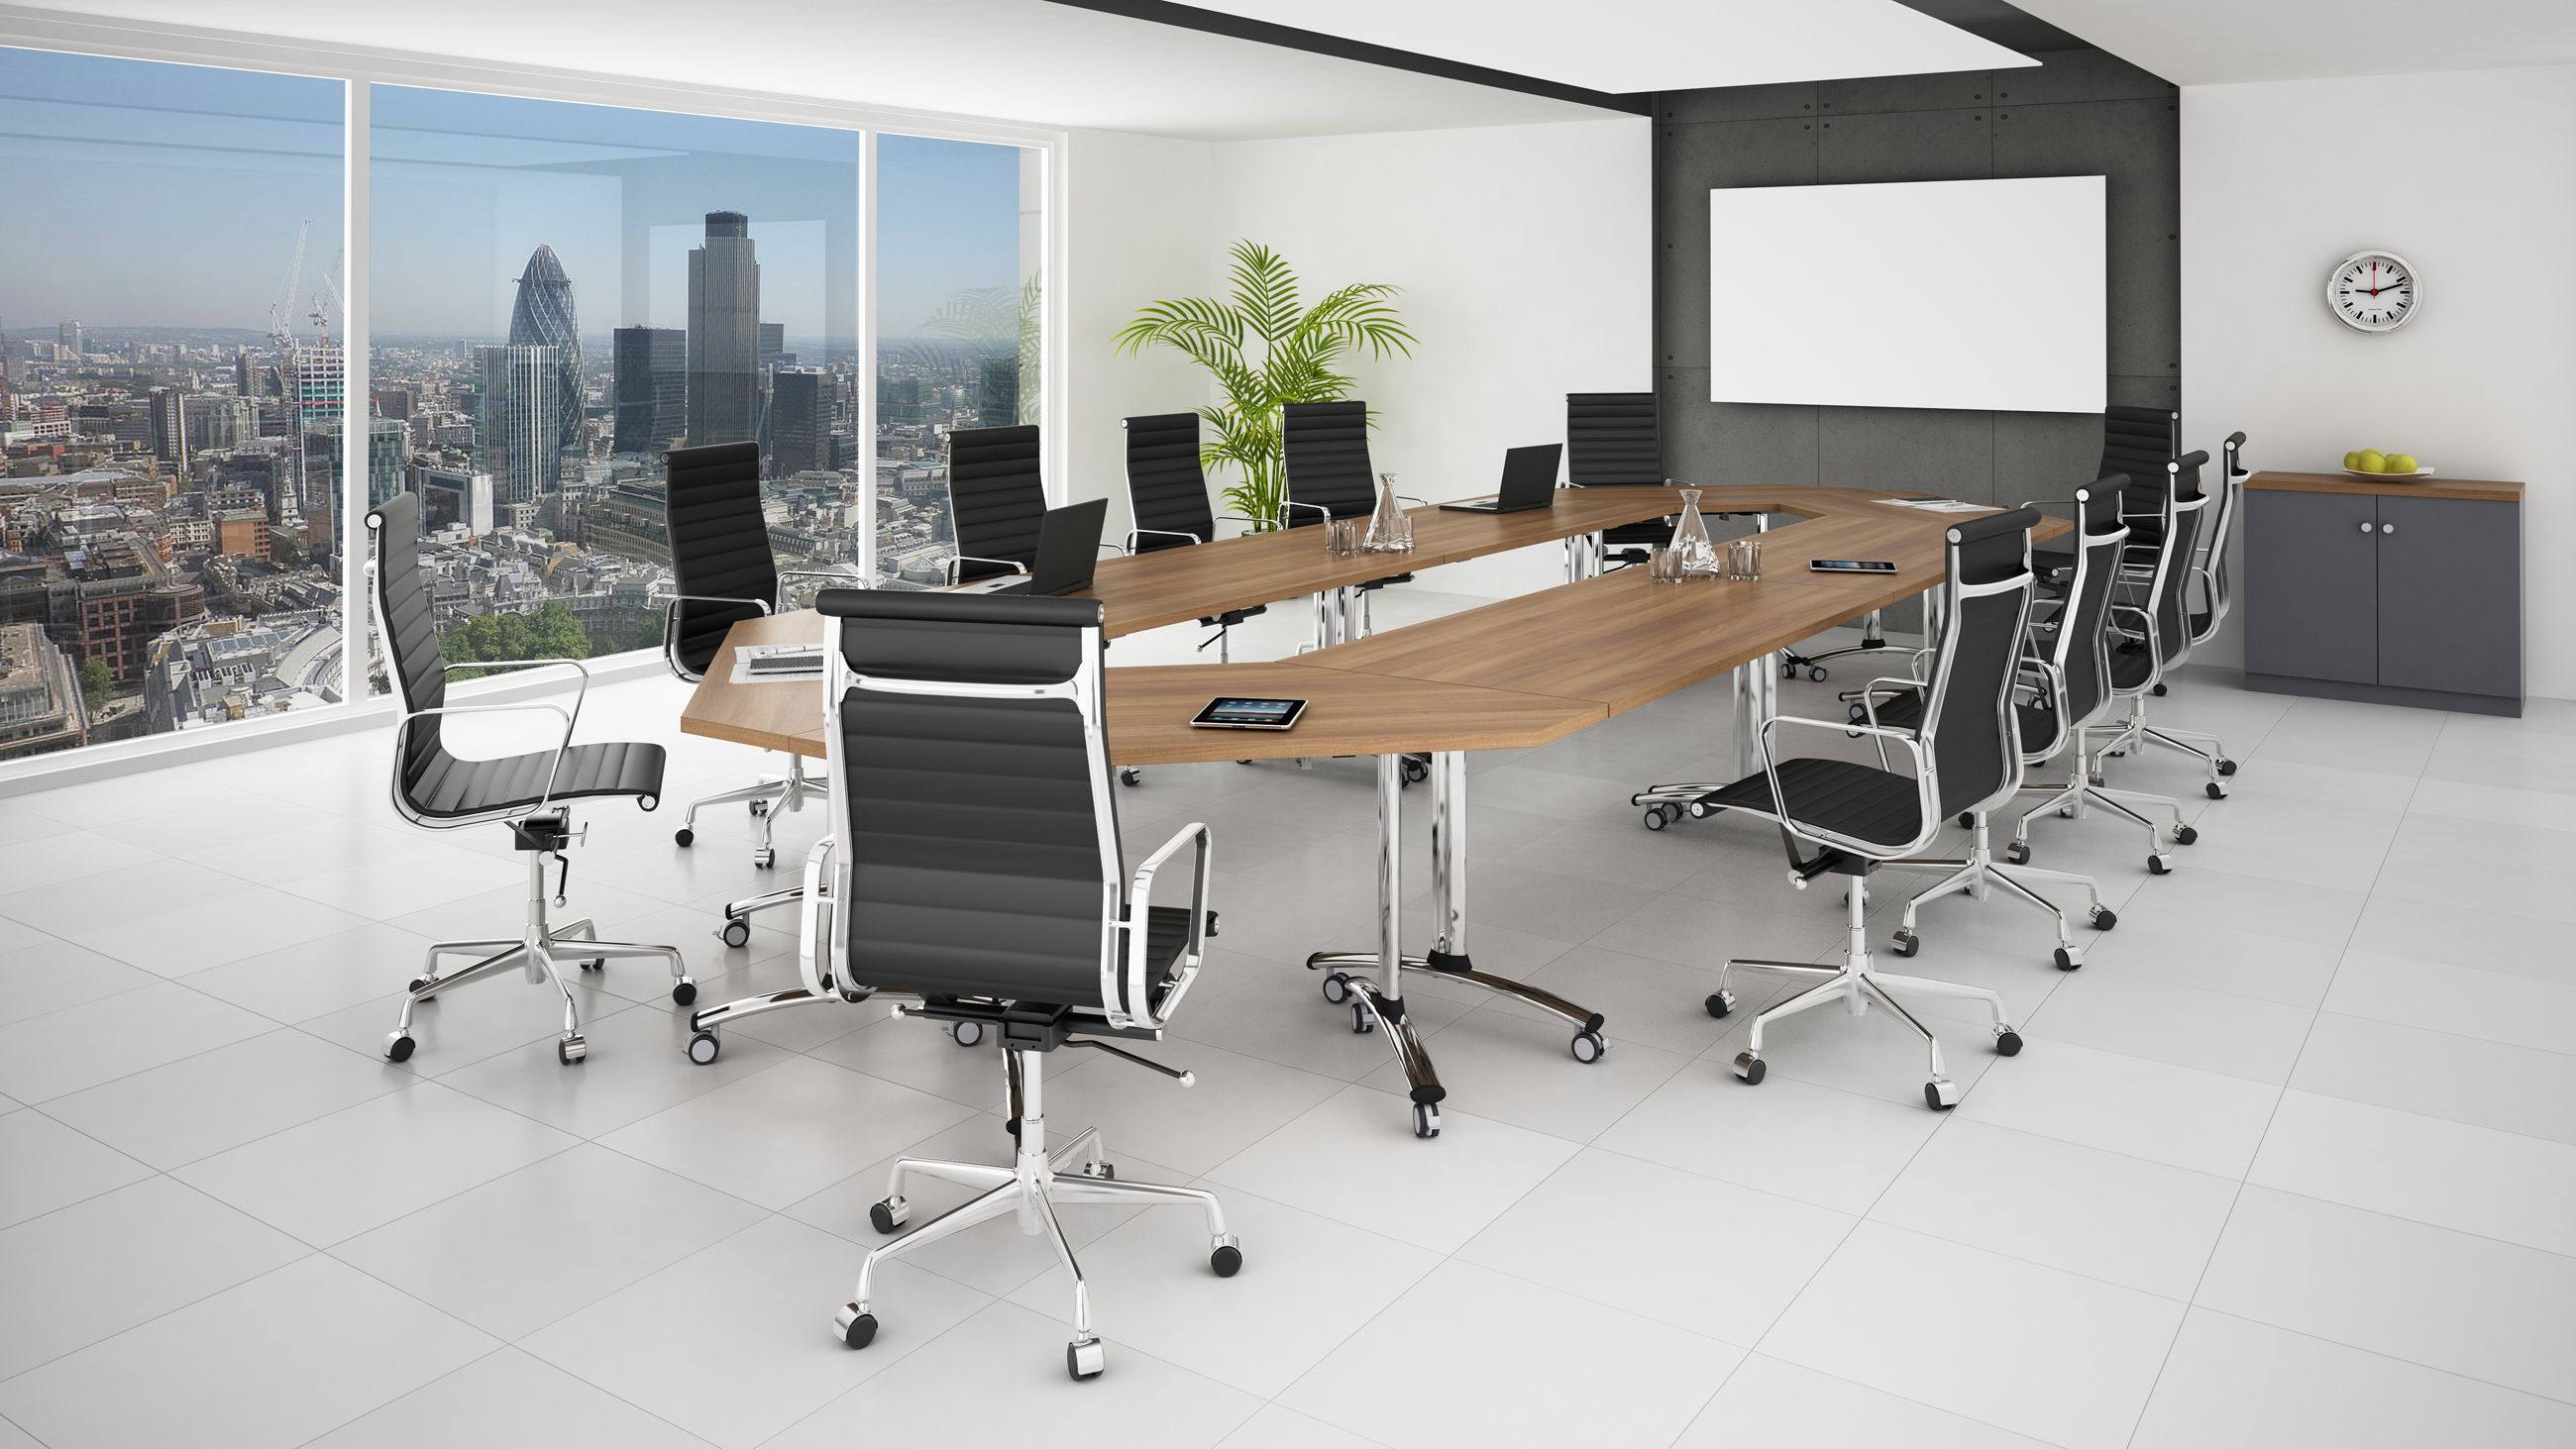 Office furniture office furniture is important part of for Design office environment